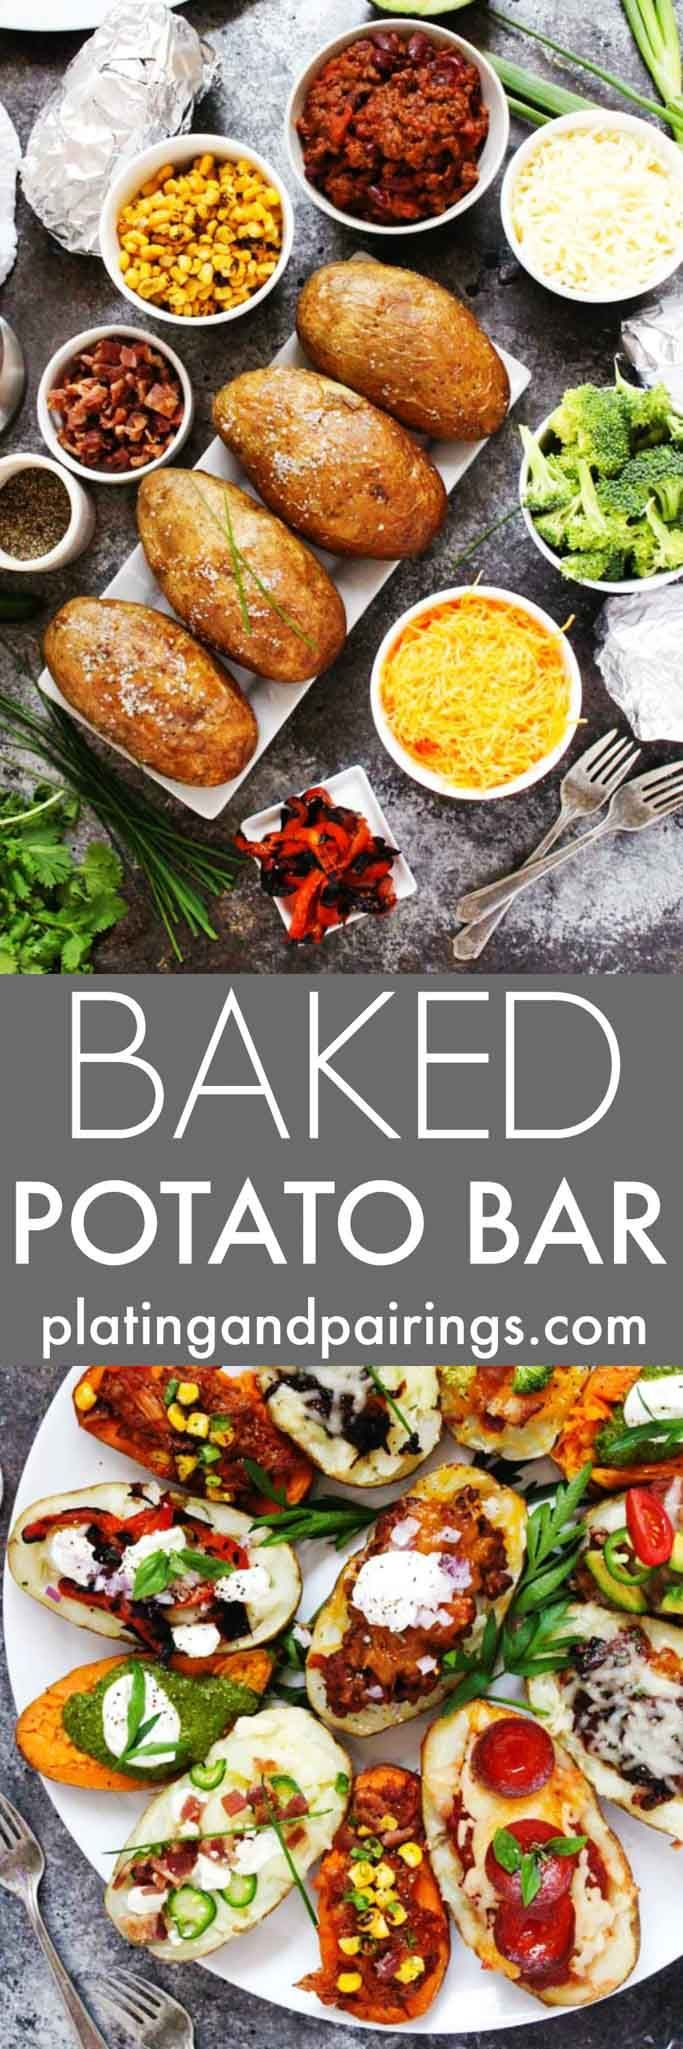 "Create a Grilled ""Baked"" Potato Bar for your next party ..."